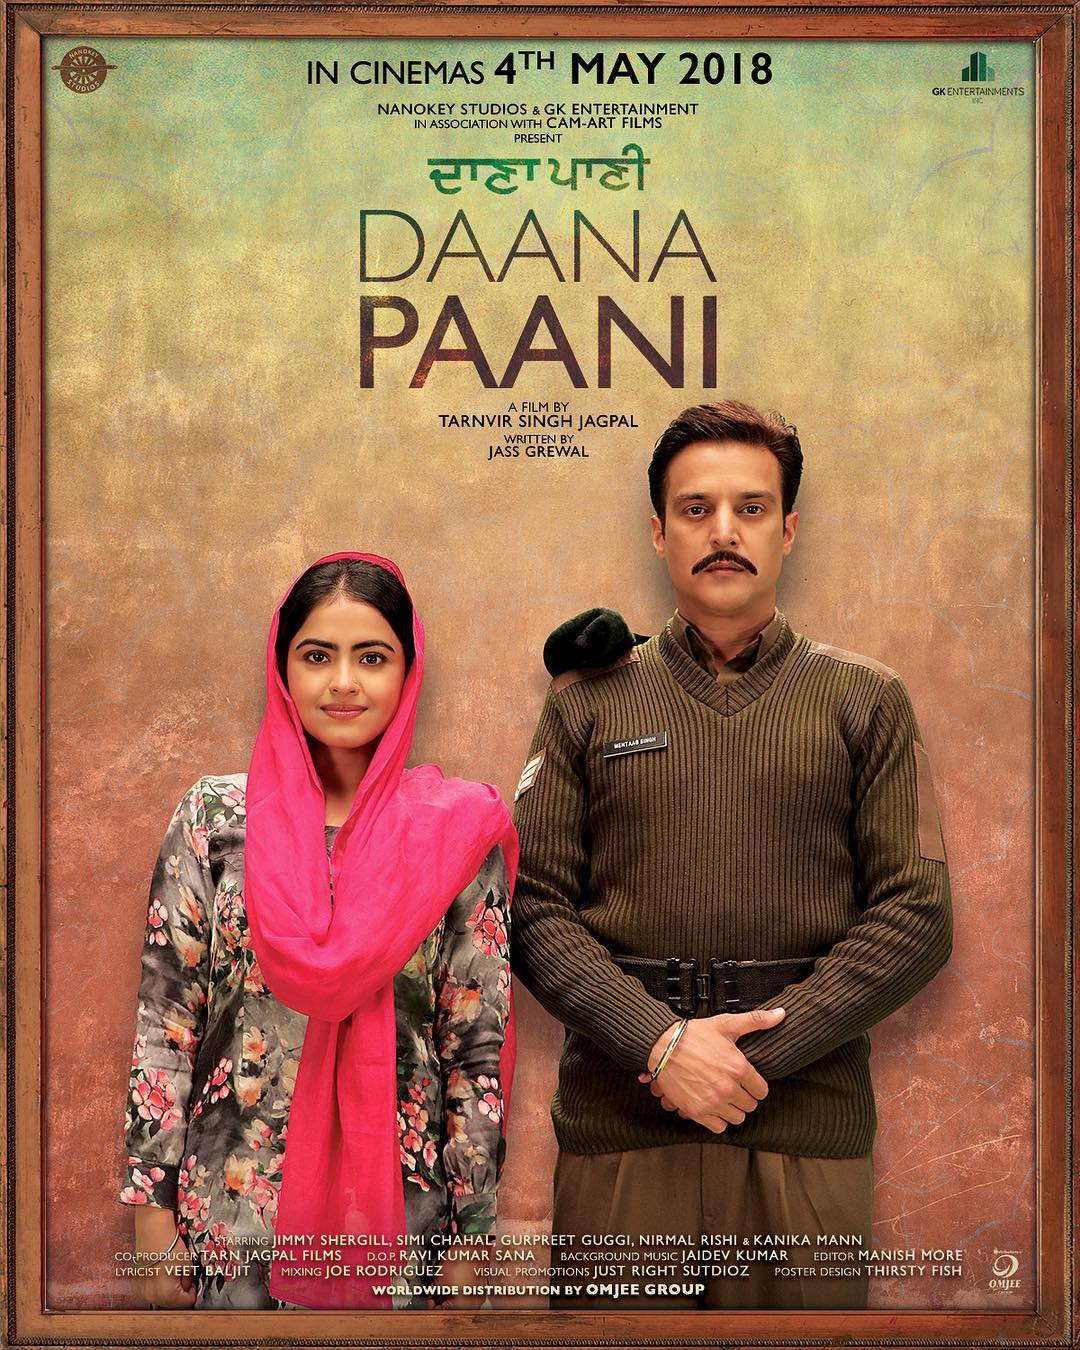 NEW RELEASE: RABB KHAIR KARE FROM THE UPCOMING MOVIE DAANI PAANI